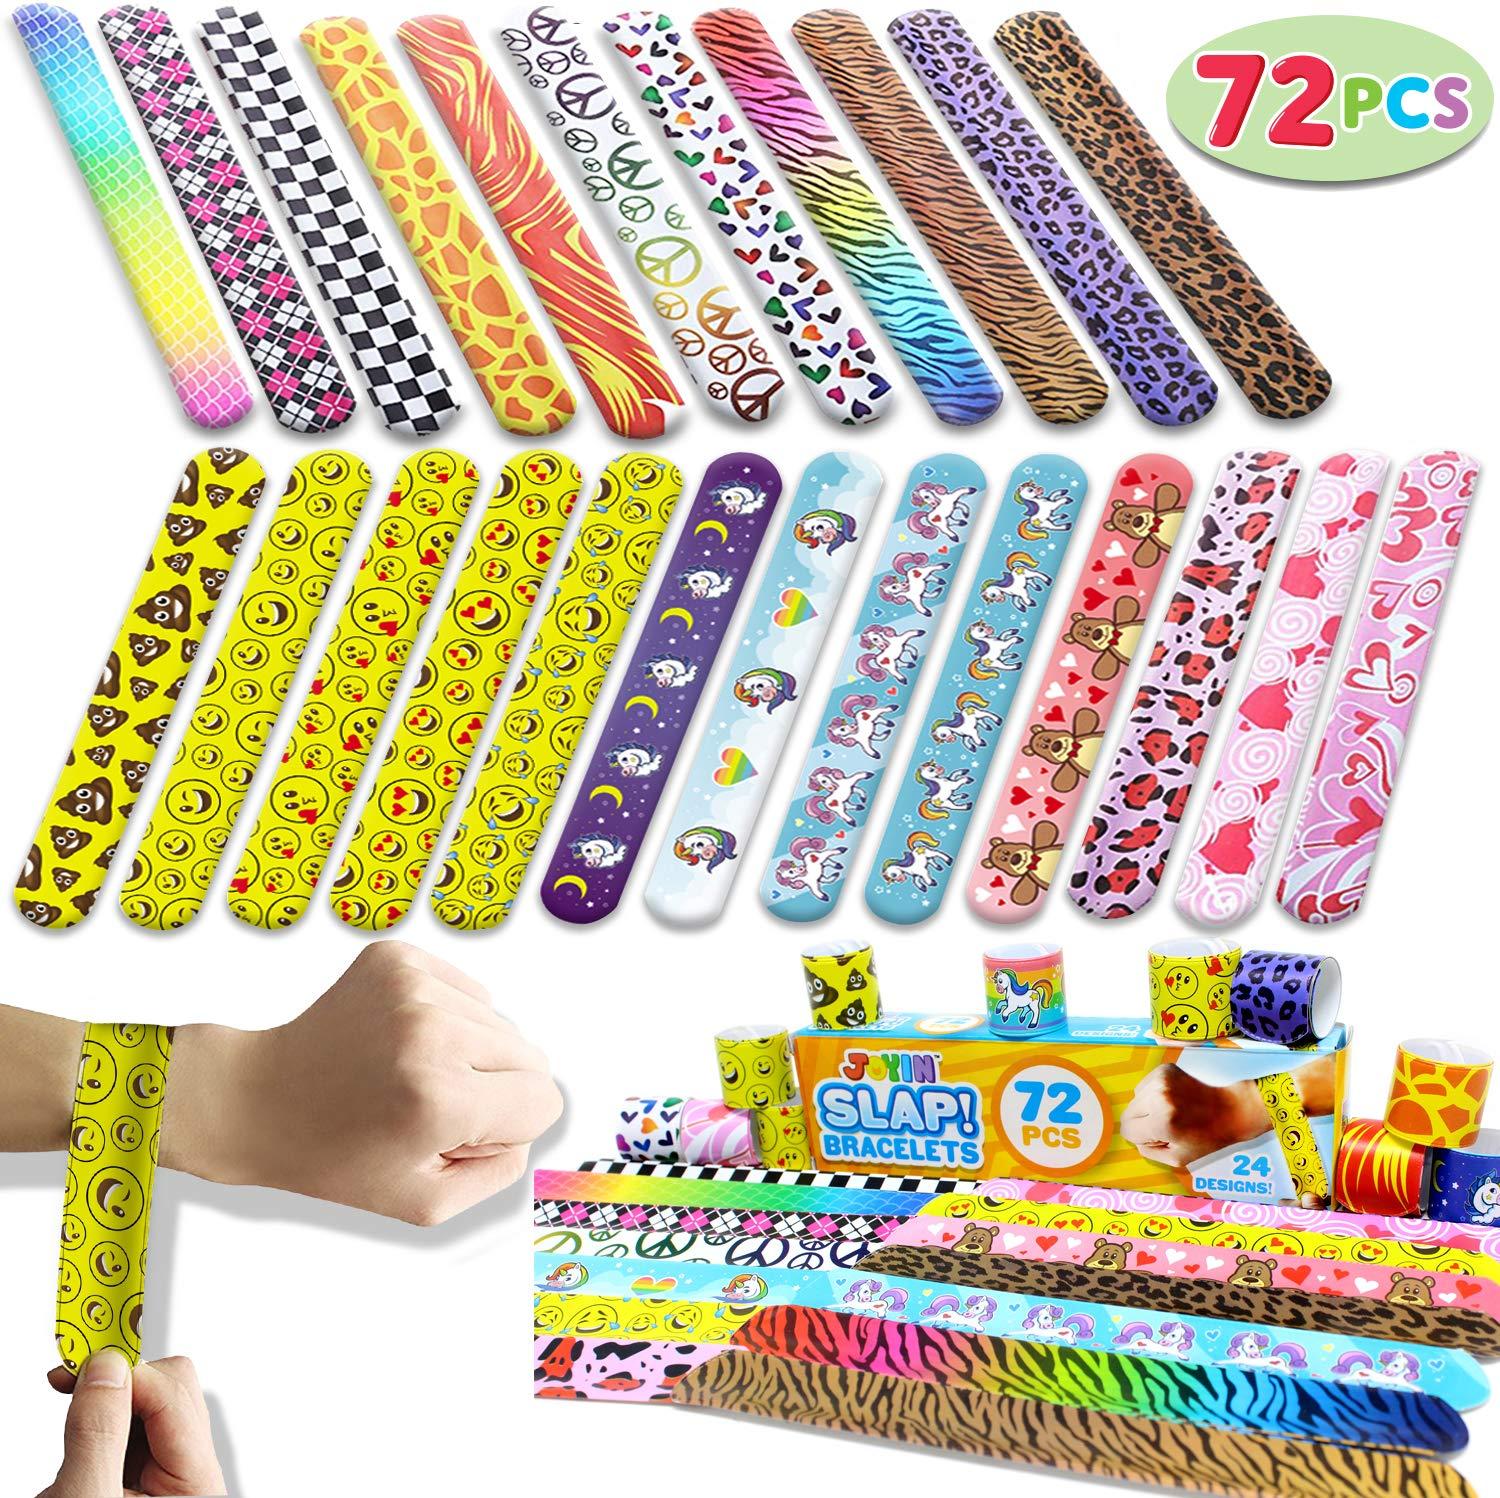 JOYIN Toy 72 PCs Slap Bracelets Valentines Day Party Favors Pack (24 Designs) with Colorful Hearts Animal Emoji and Unicorn for Valentines Gift and Classroom Exchange by JOYIN